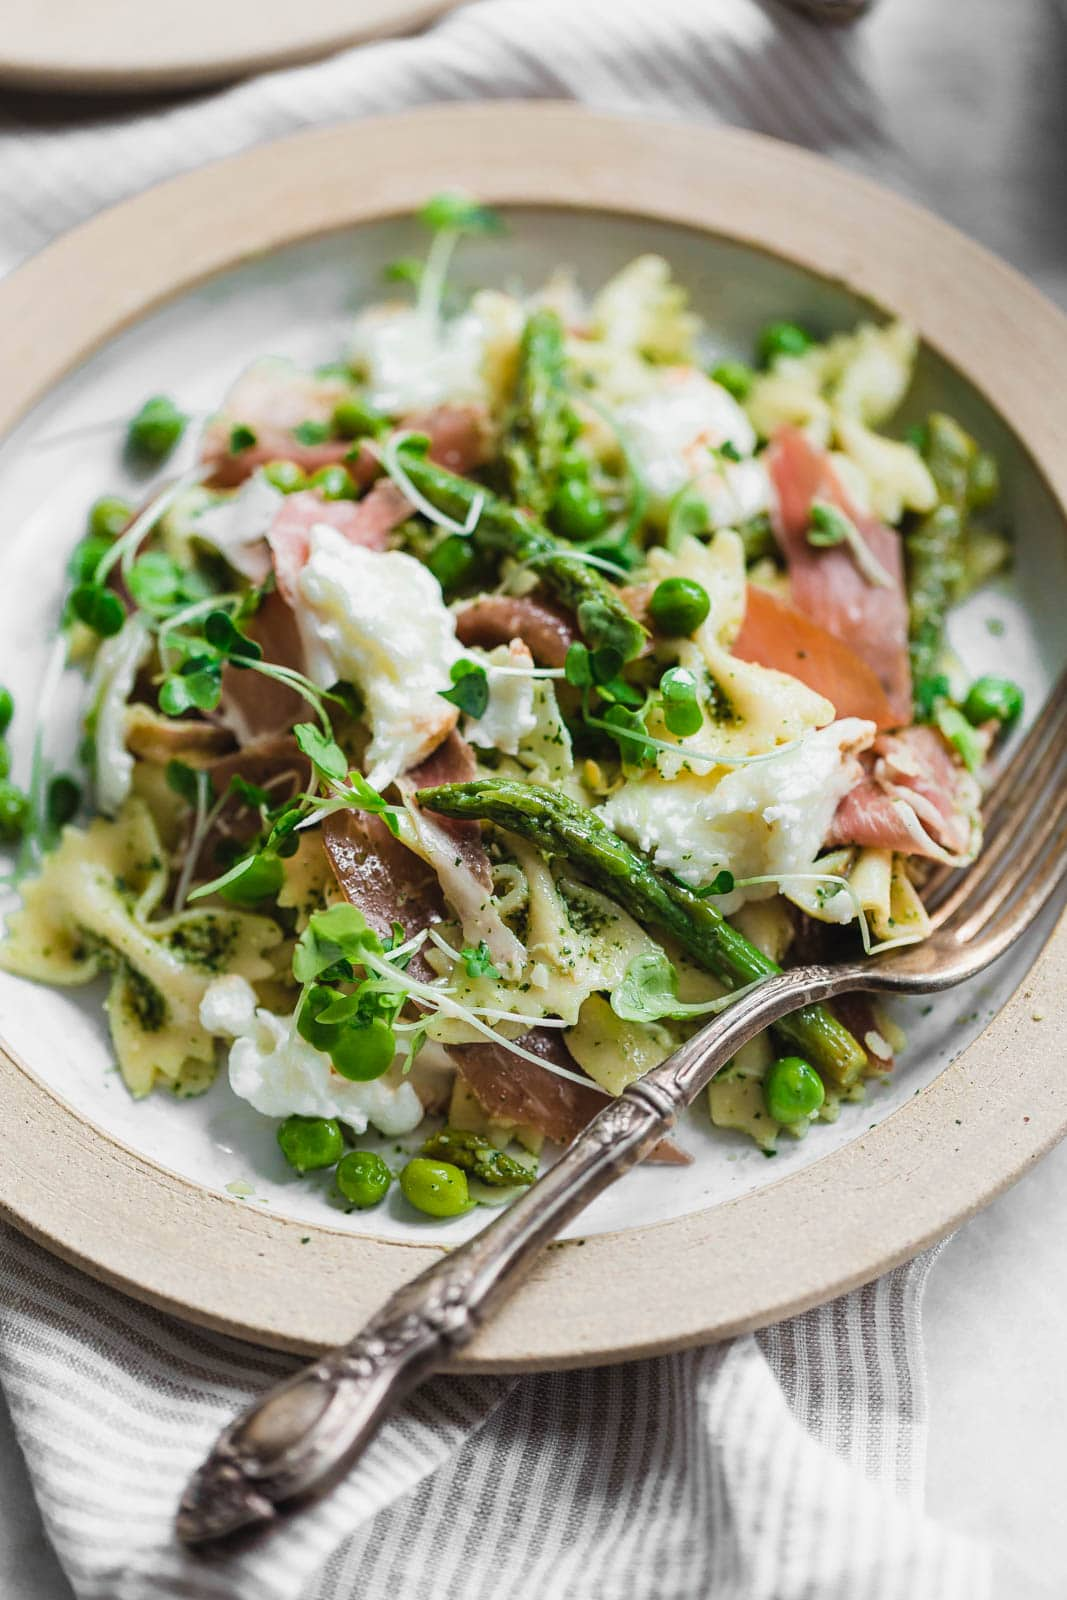 Prosciutto Pea and Pesto Pasta Salad - Broma Bakery